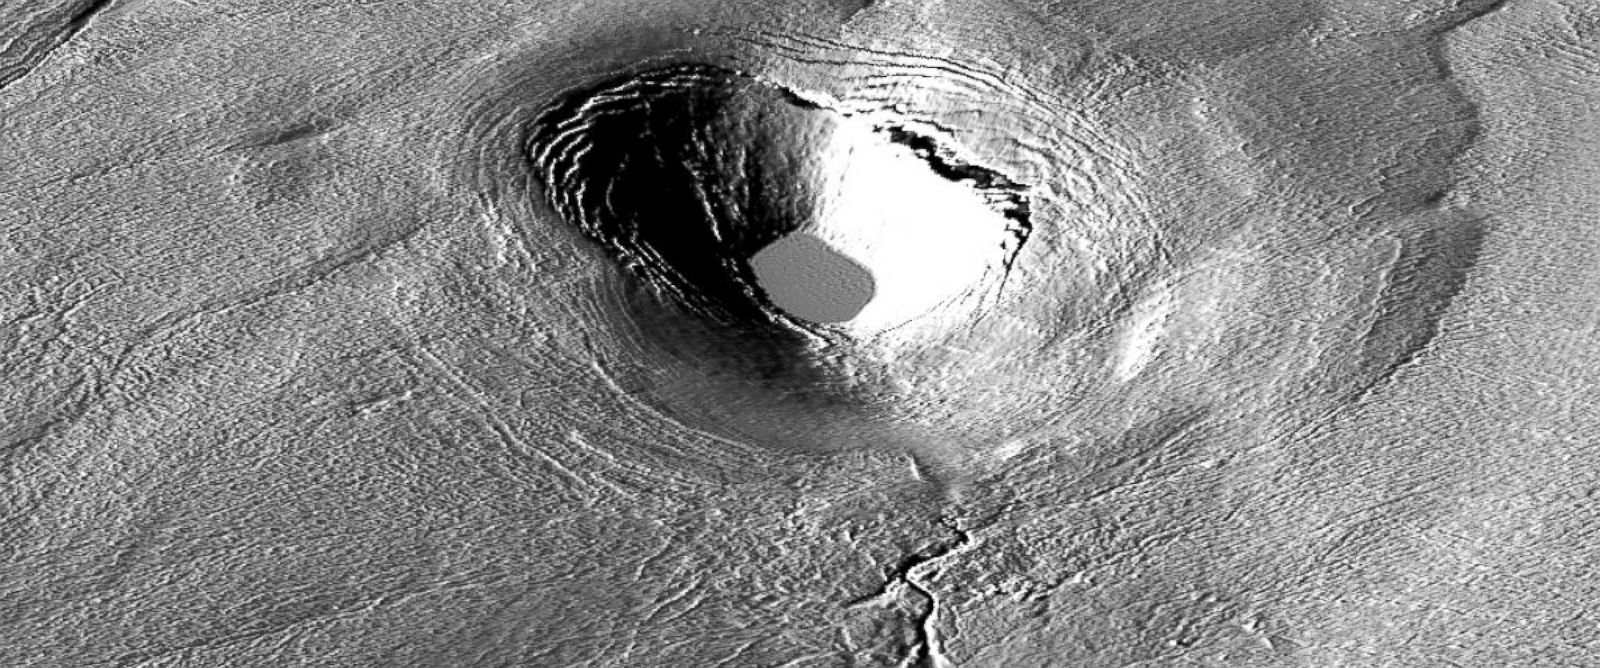 PHOTO: Researchers at The Ohio State University were creating the highest-resolution maps of the Greenland Ice Sheet made to date, when they discovered a crater, shown here, which had once been the site of a sub-glacial lake.